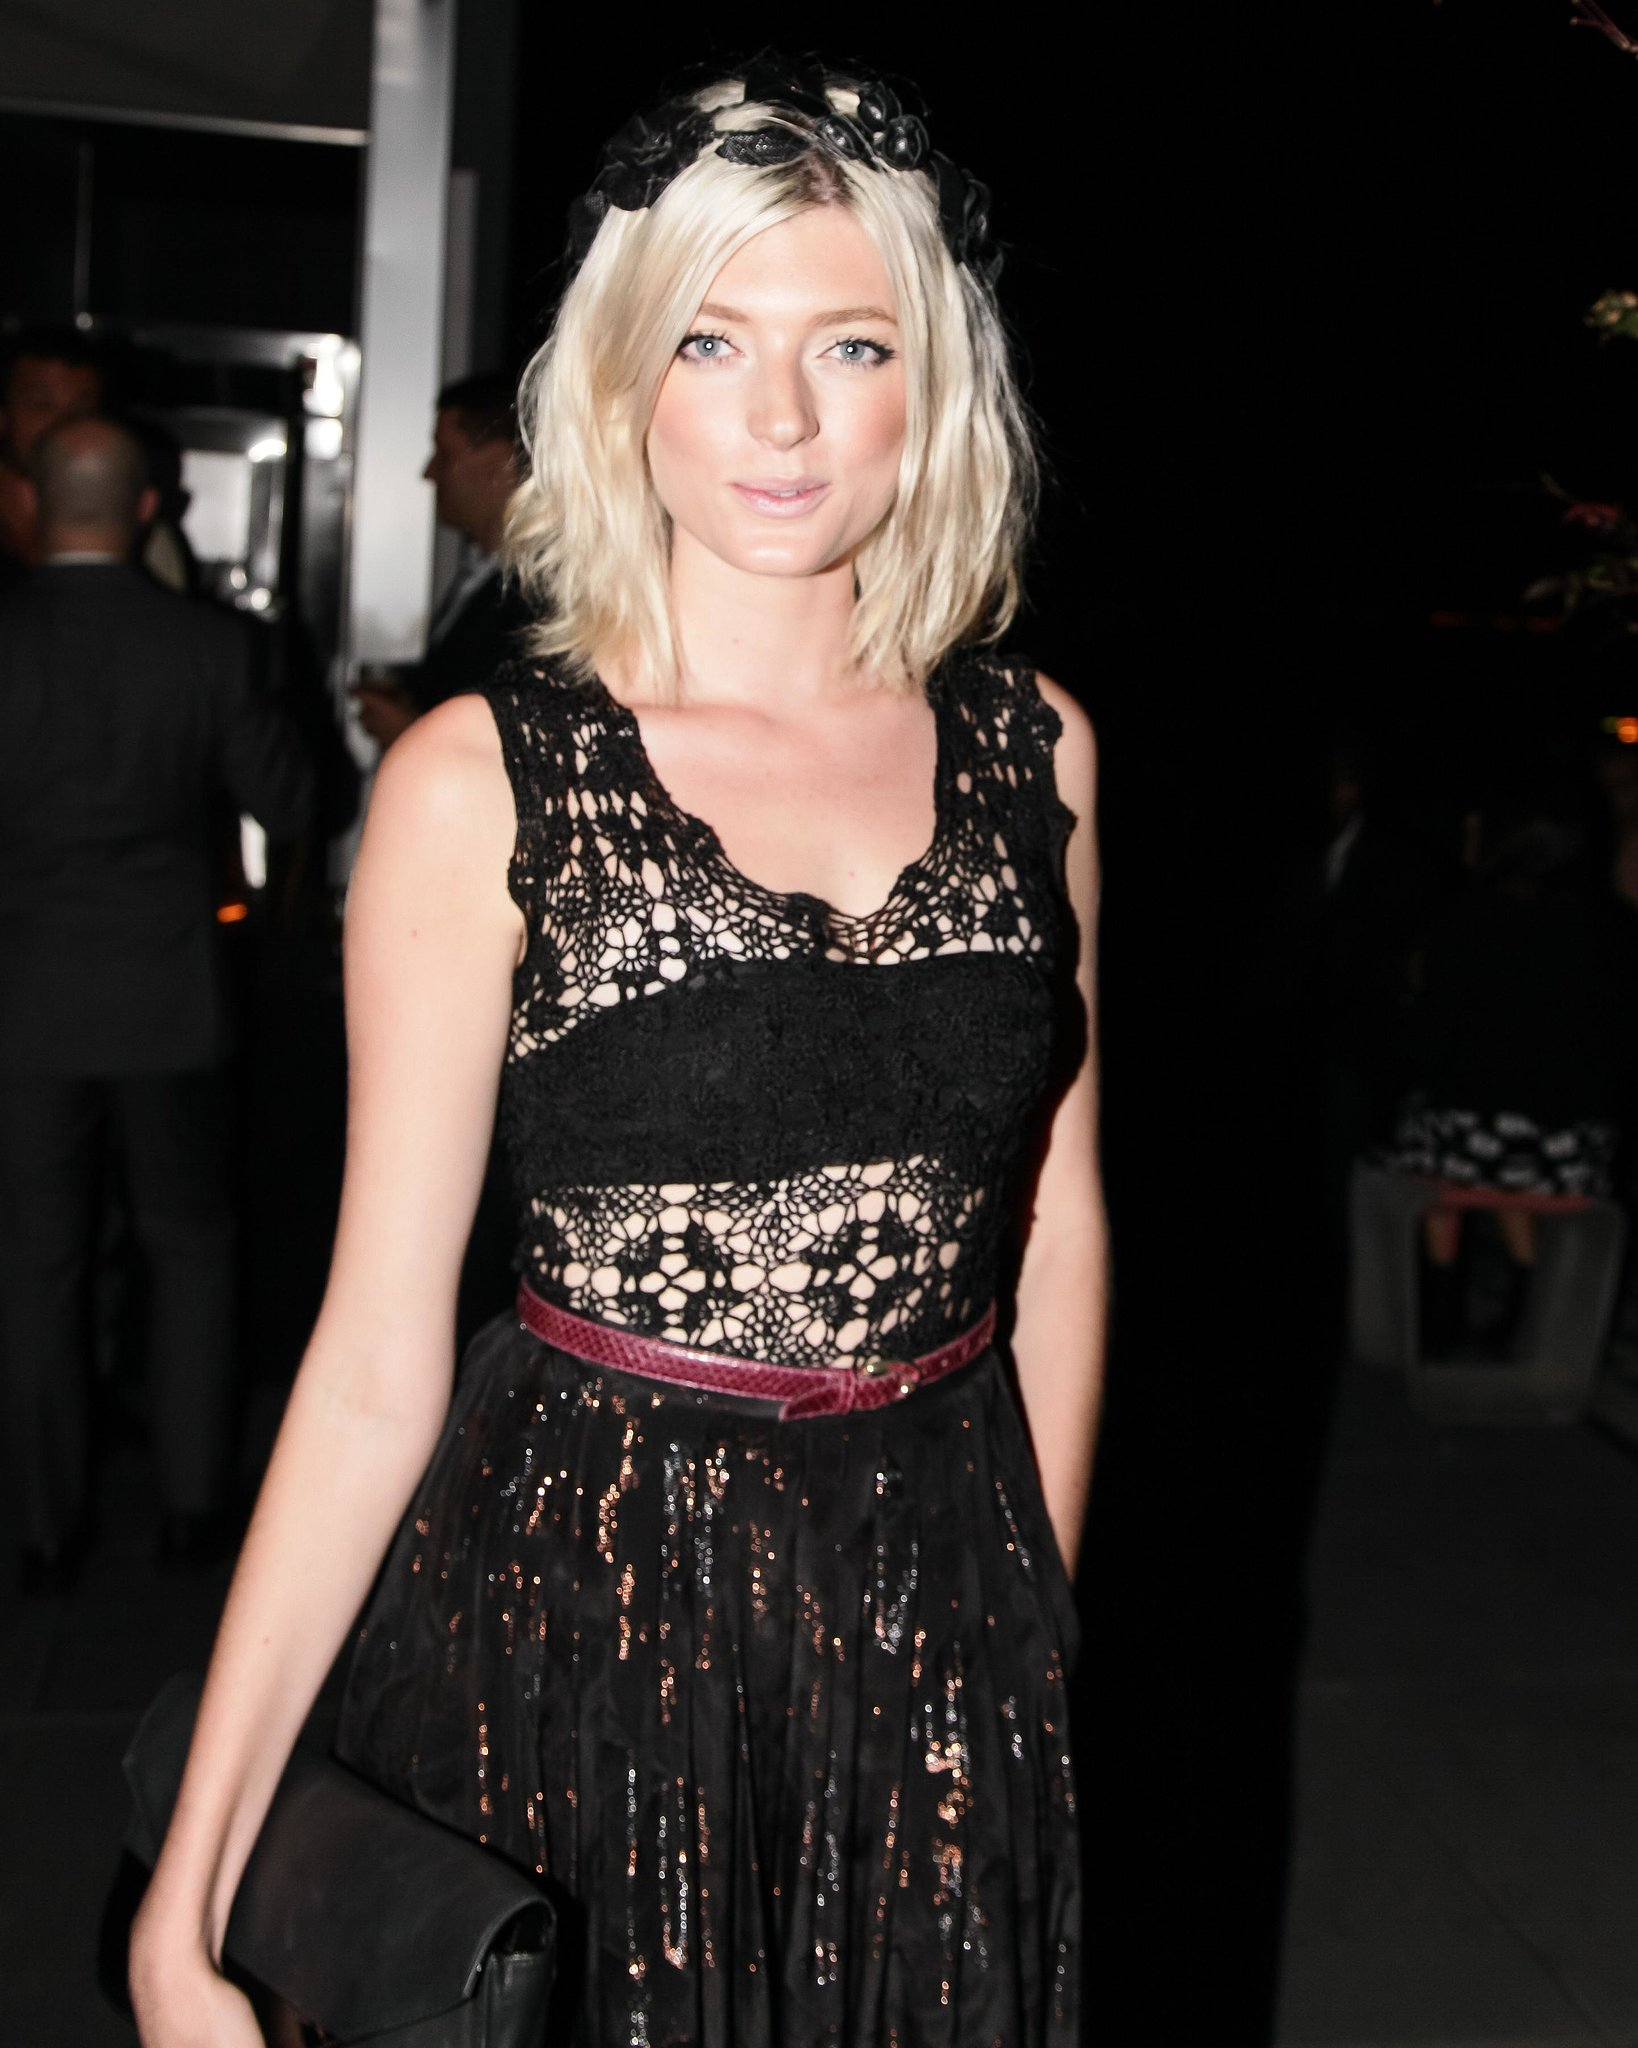 Sophie Sumner arrived for the Hotel Americano Rush afterparty in a lacy dress.